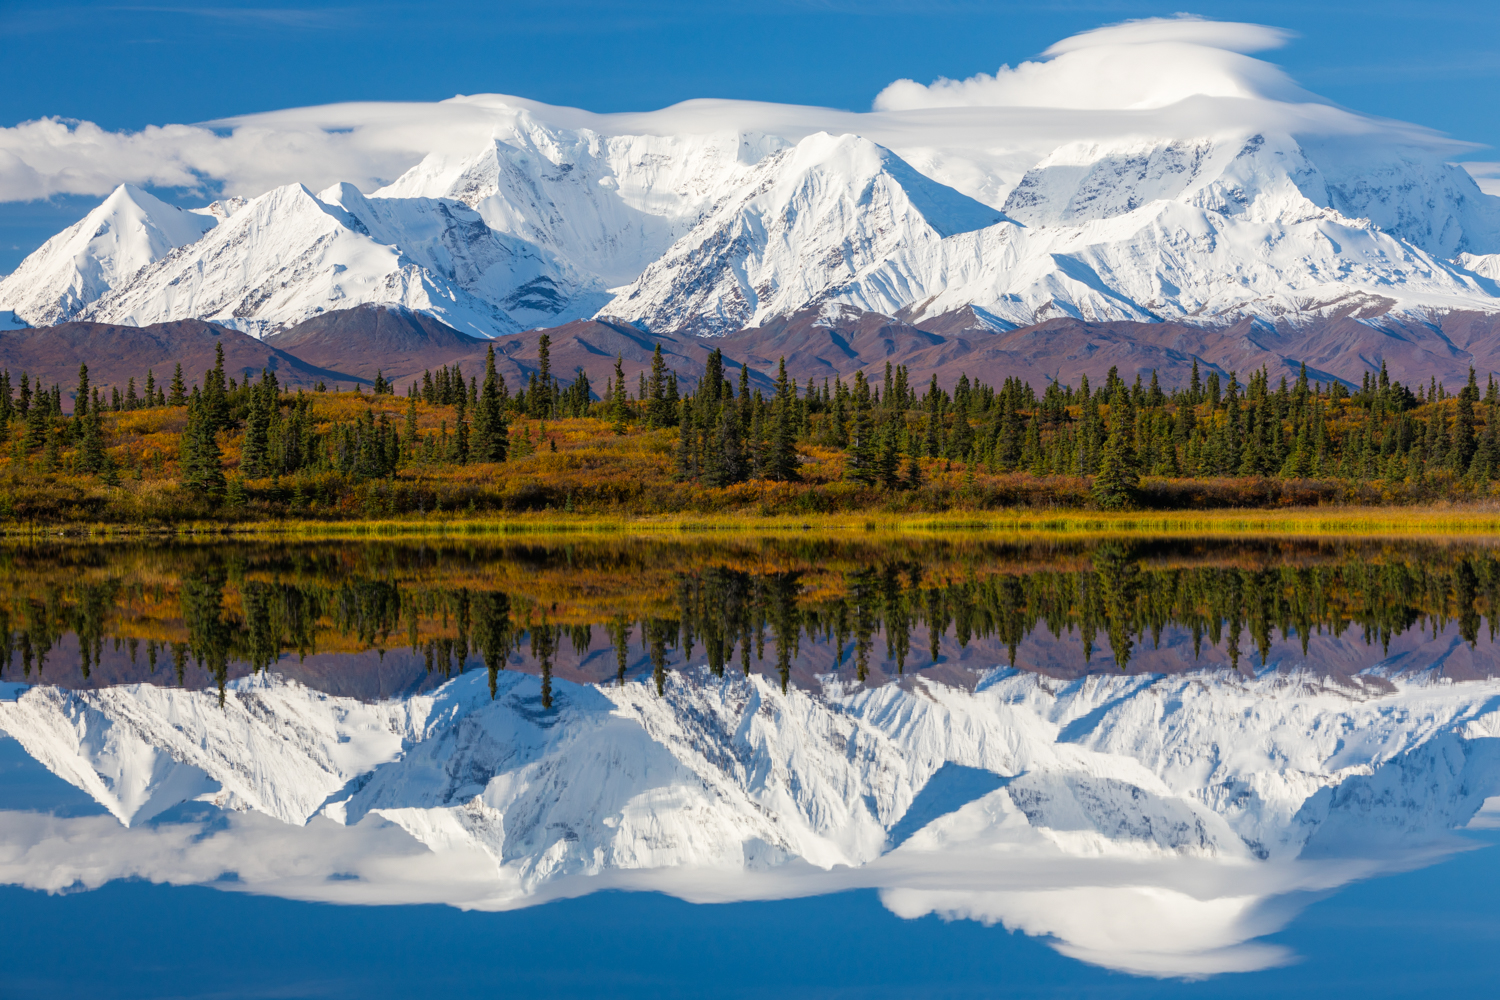 Eastern Alaska Range Reflection